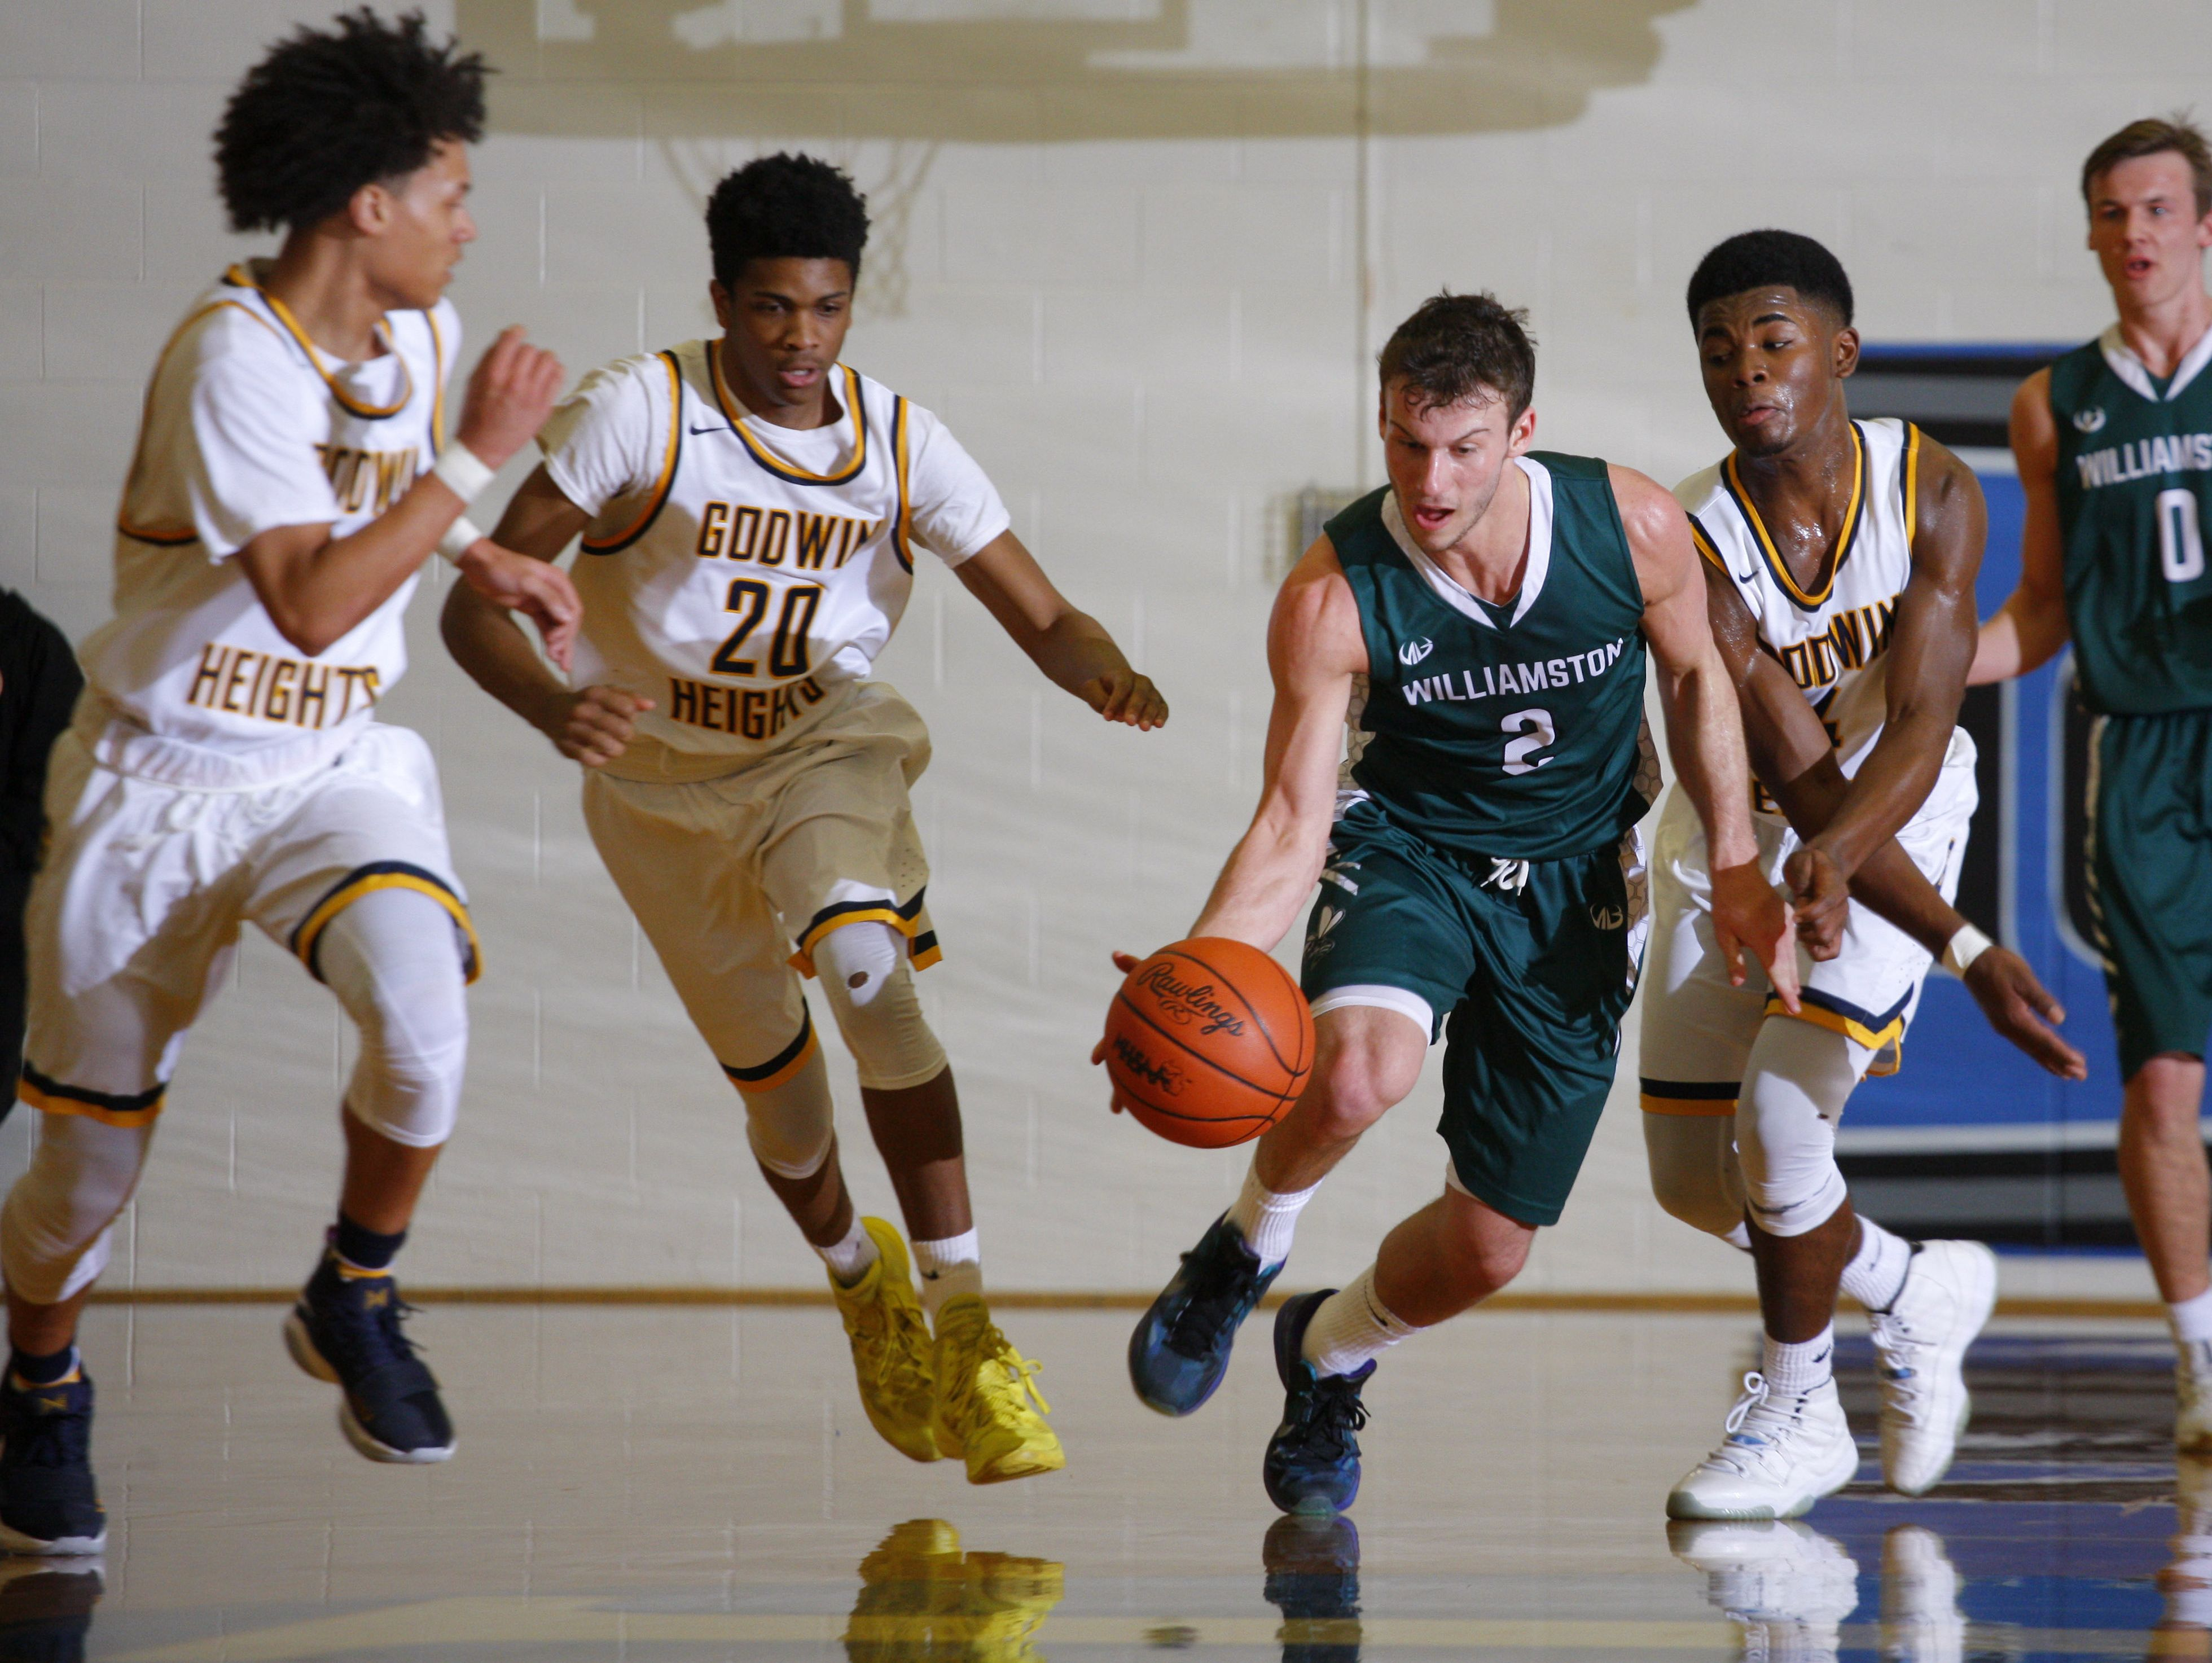 Williamston's Sy Barnnett (2) maneuvers through a host of Godwin Heights defenders during their MHSAA regional game Monday, March 13, 2017, in Ionia, Mich. Williamston won 69-65..